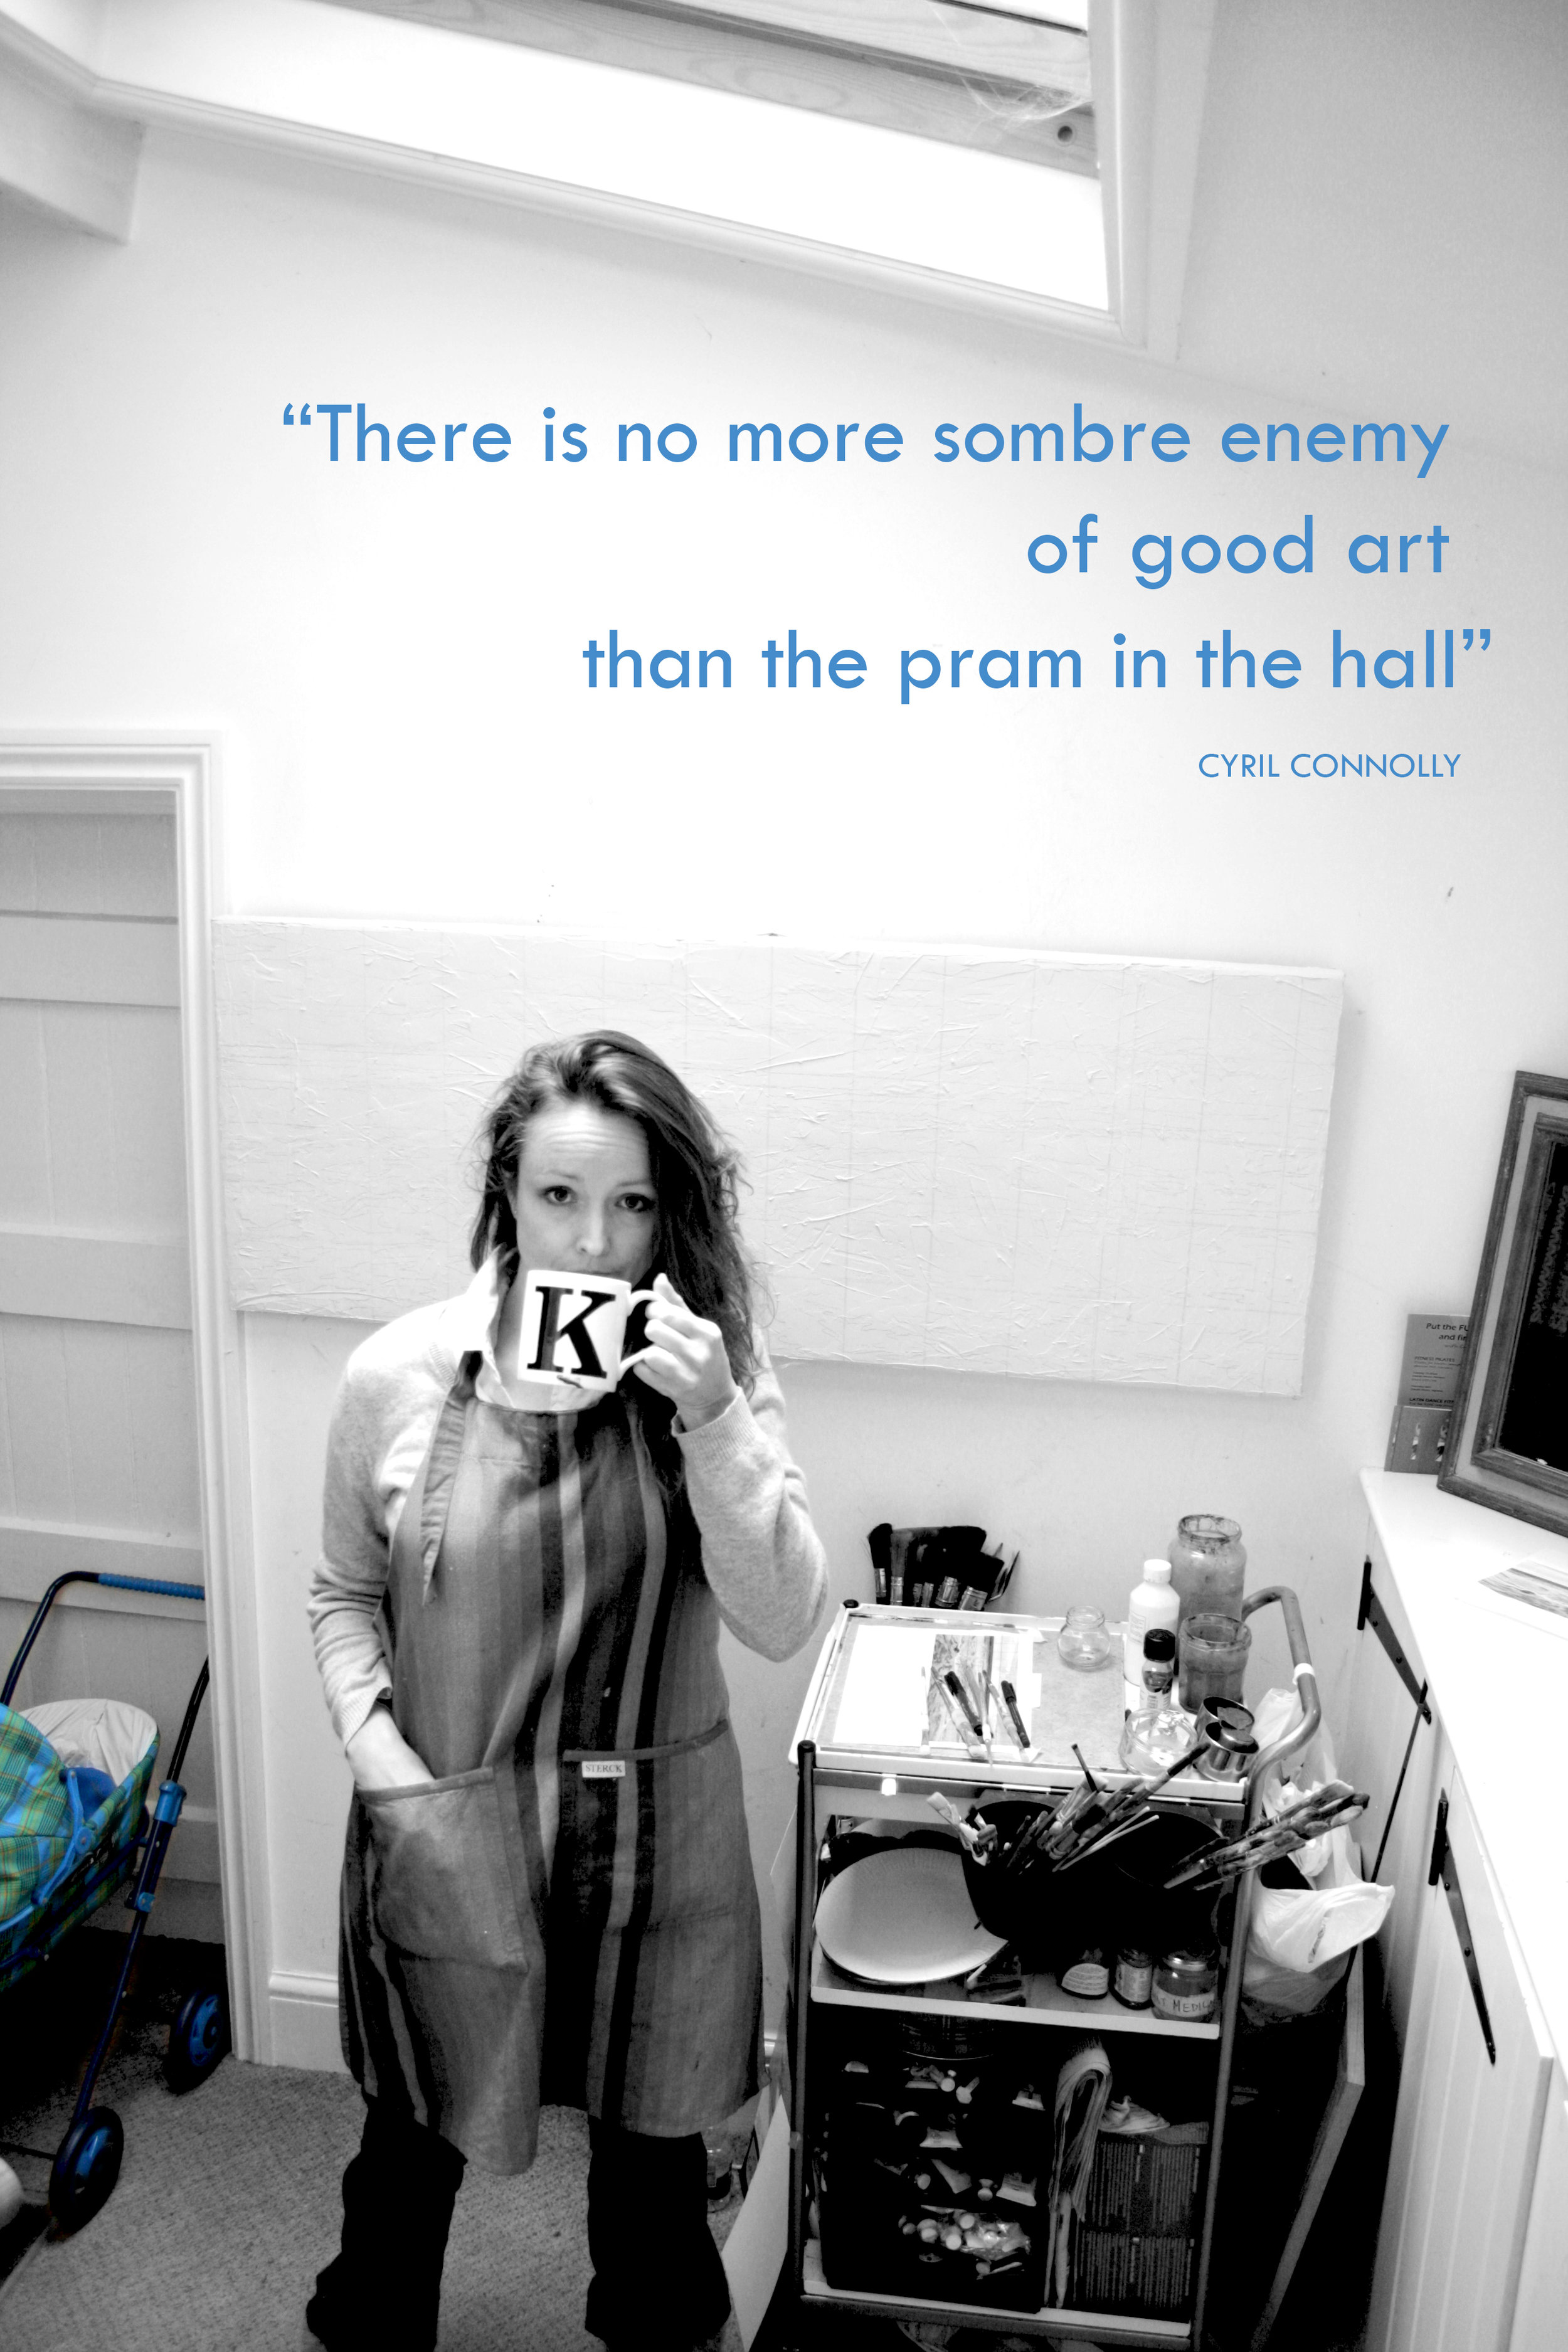 Karen, paints in her hall because of the natural light from above, and in spite of the pram...